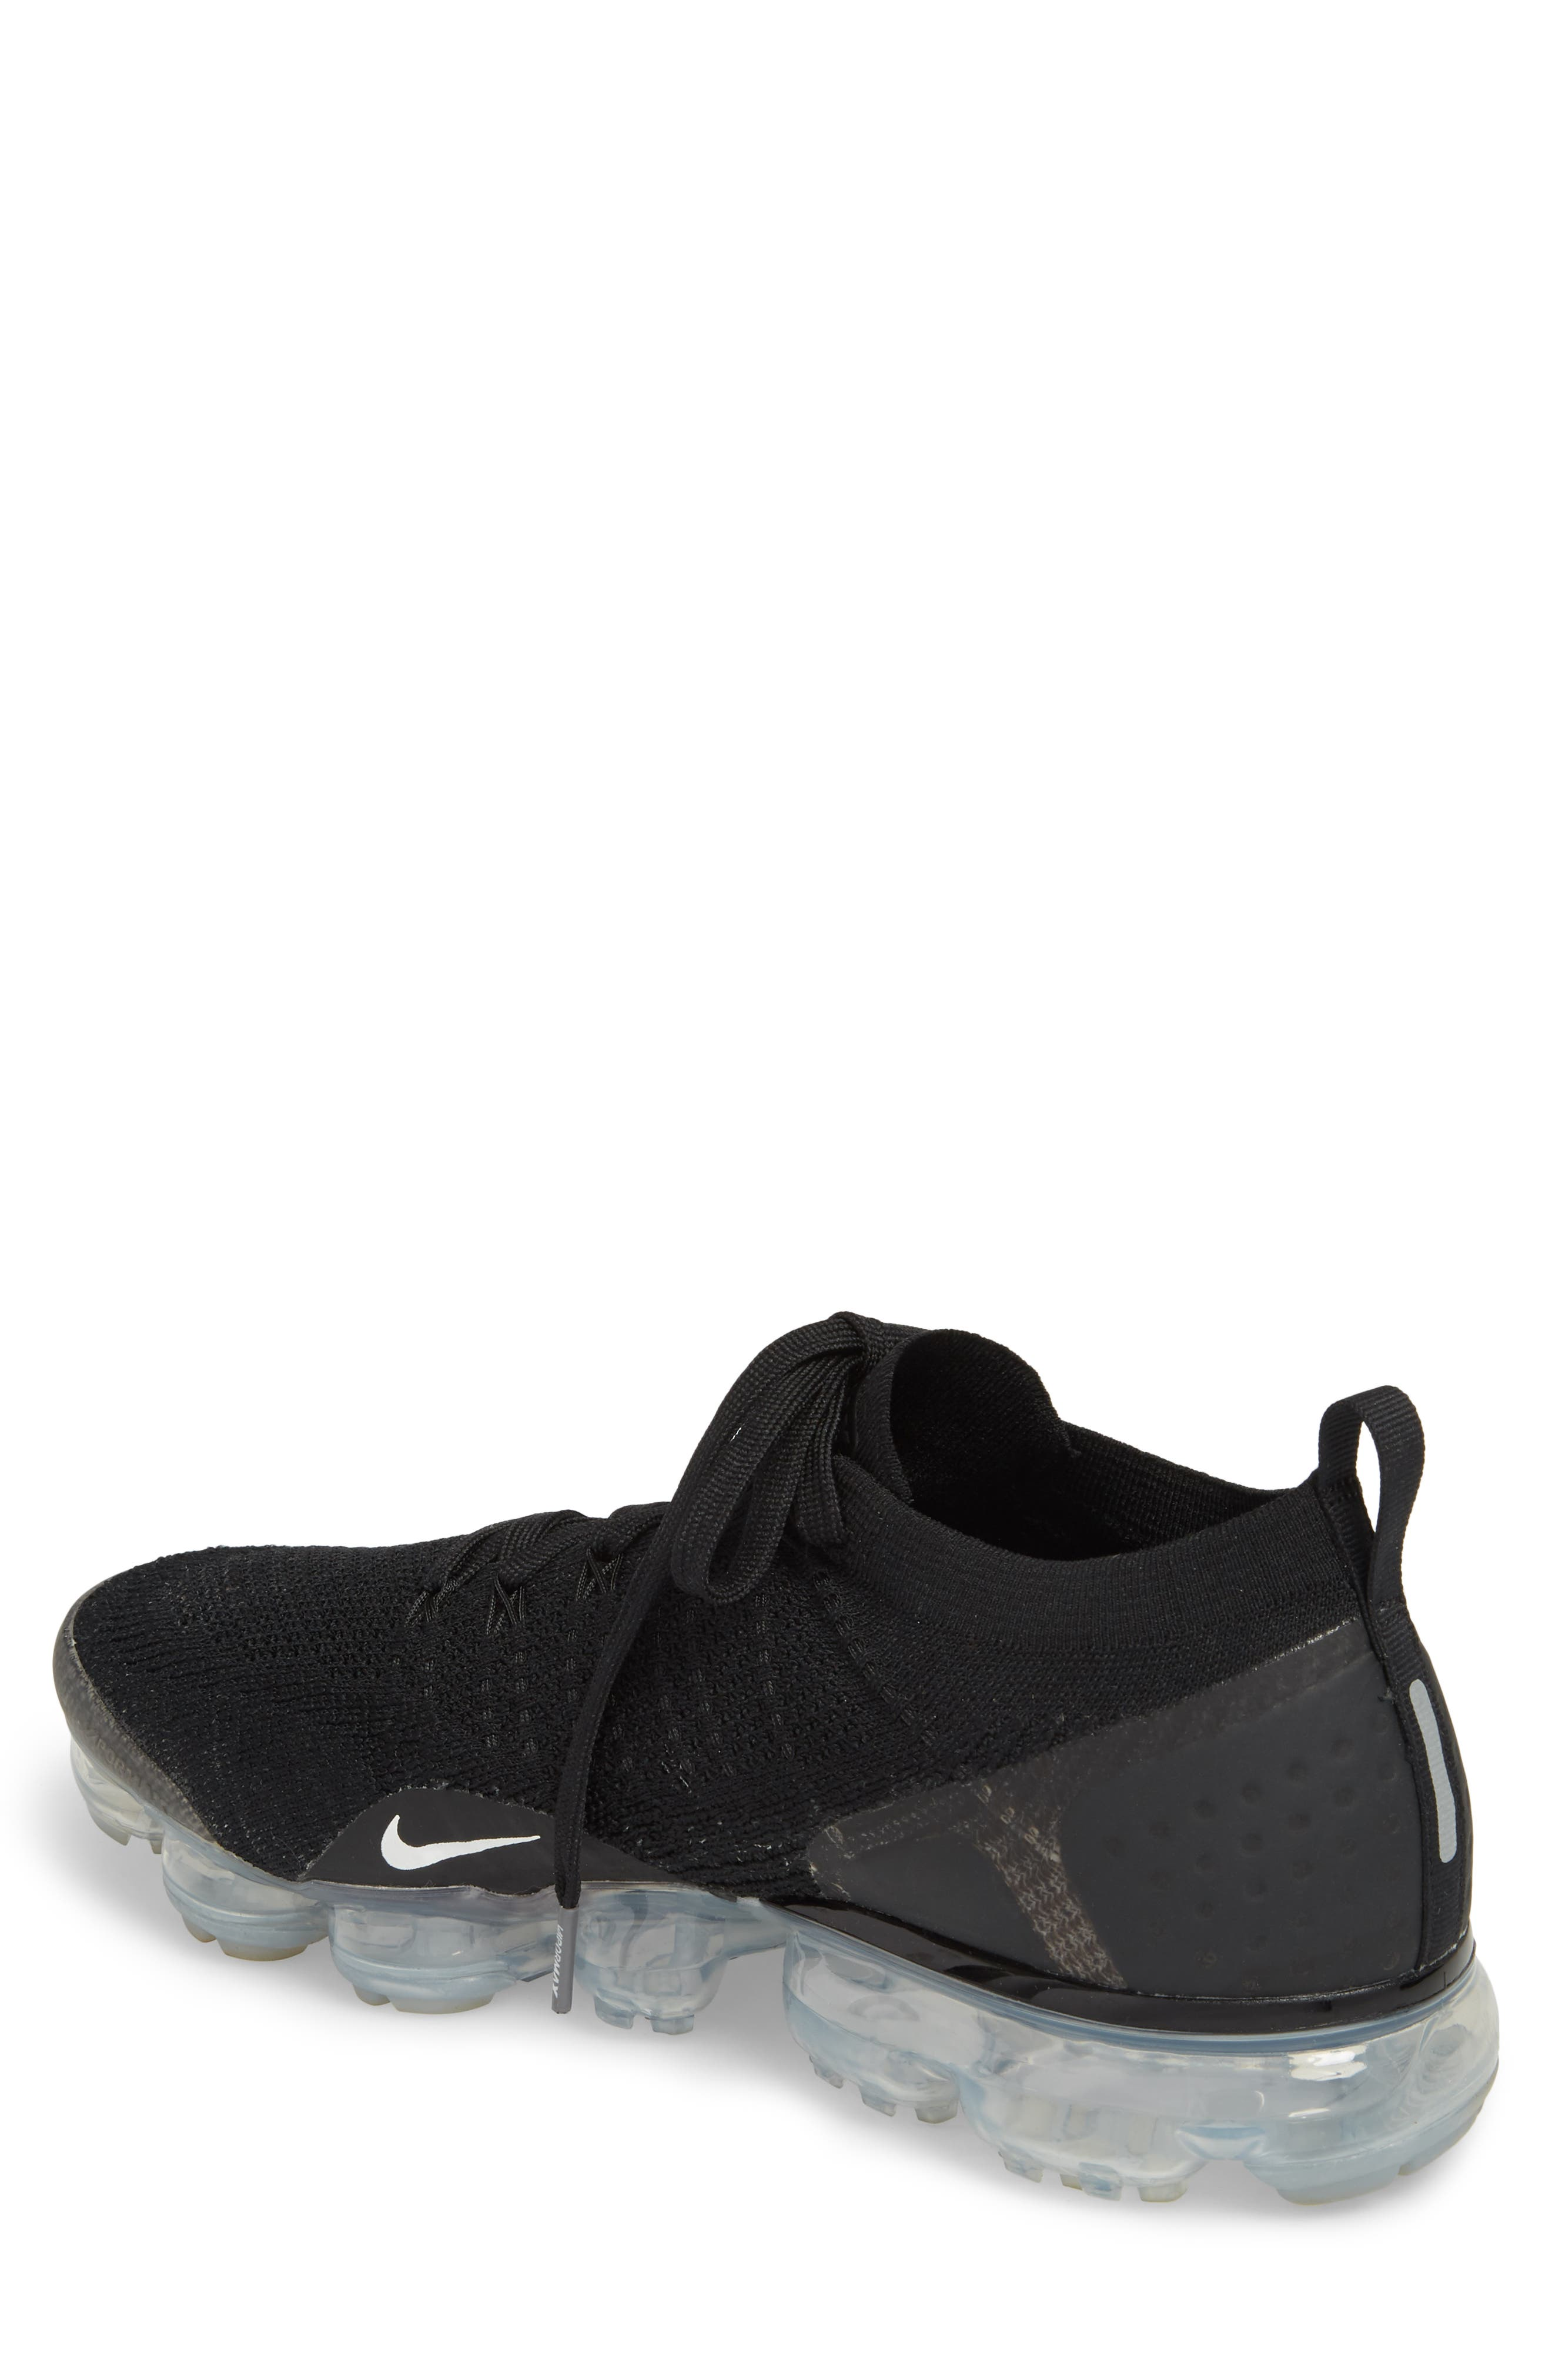 Air Vapormax Flyknit 2 Running Shoe,                             Alternate thumbnail 2, color,                             001